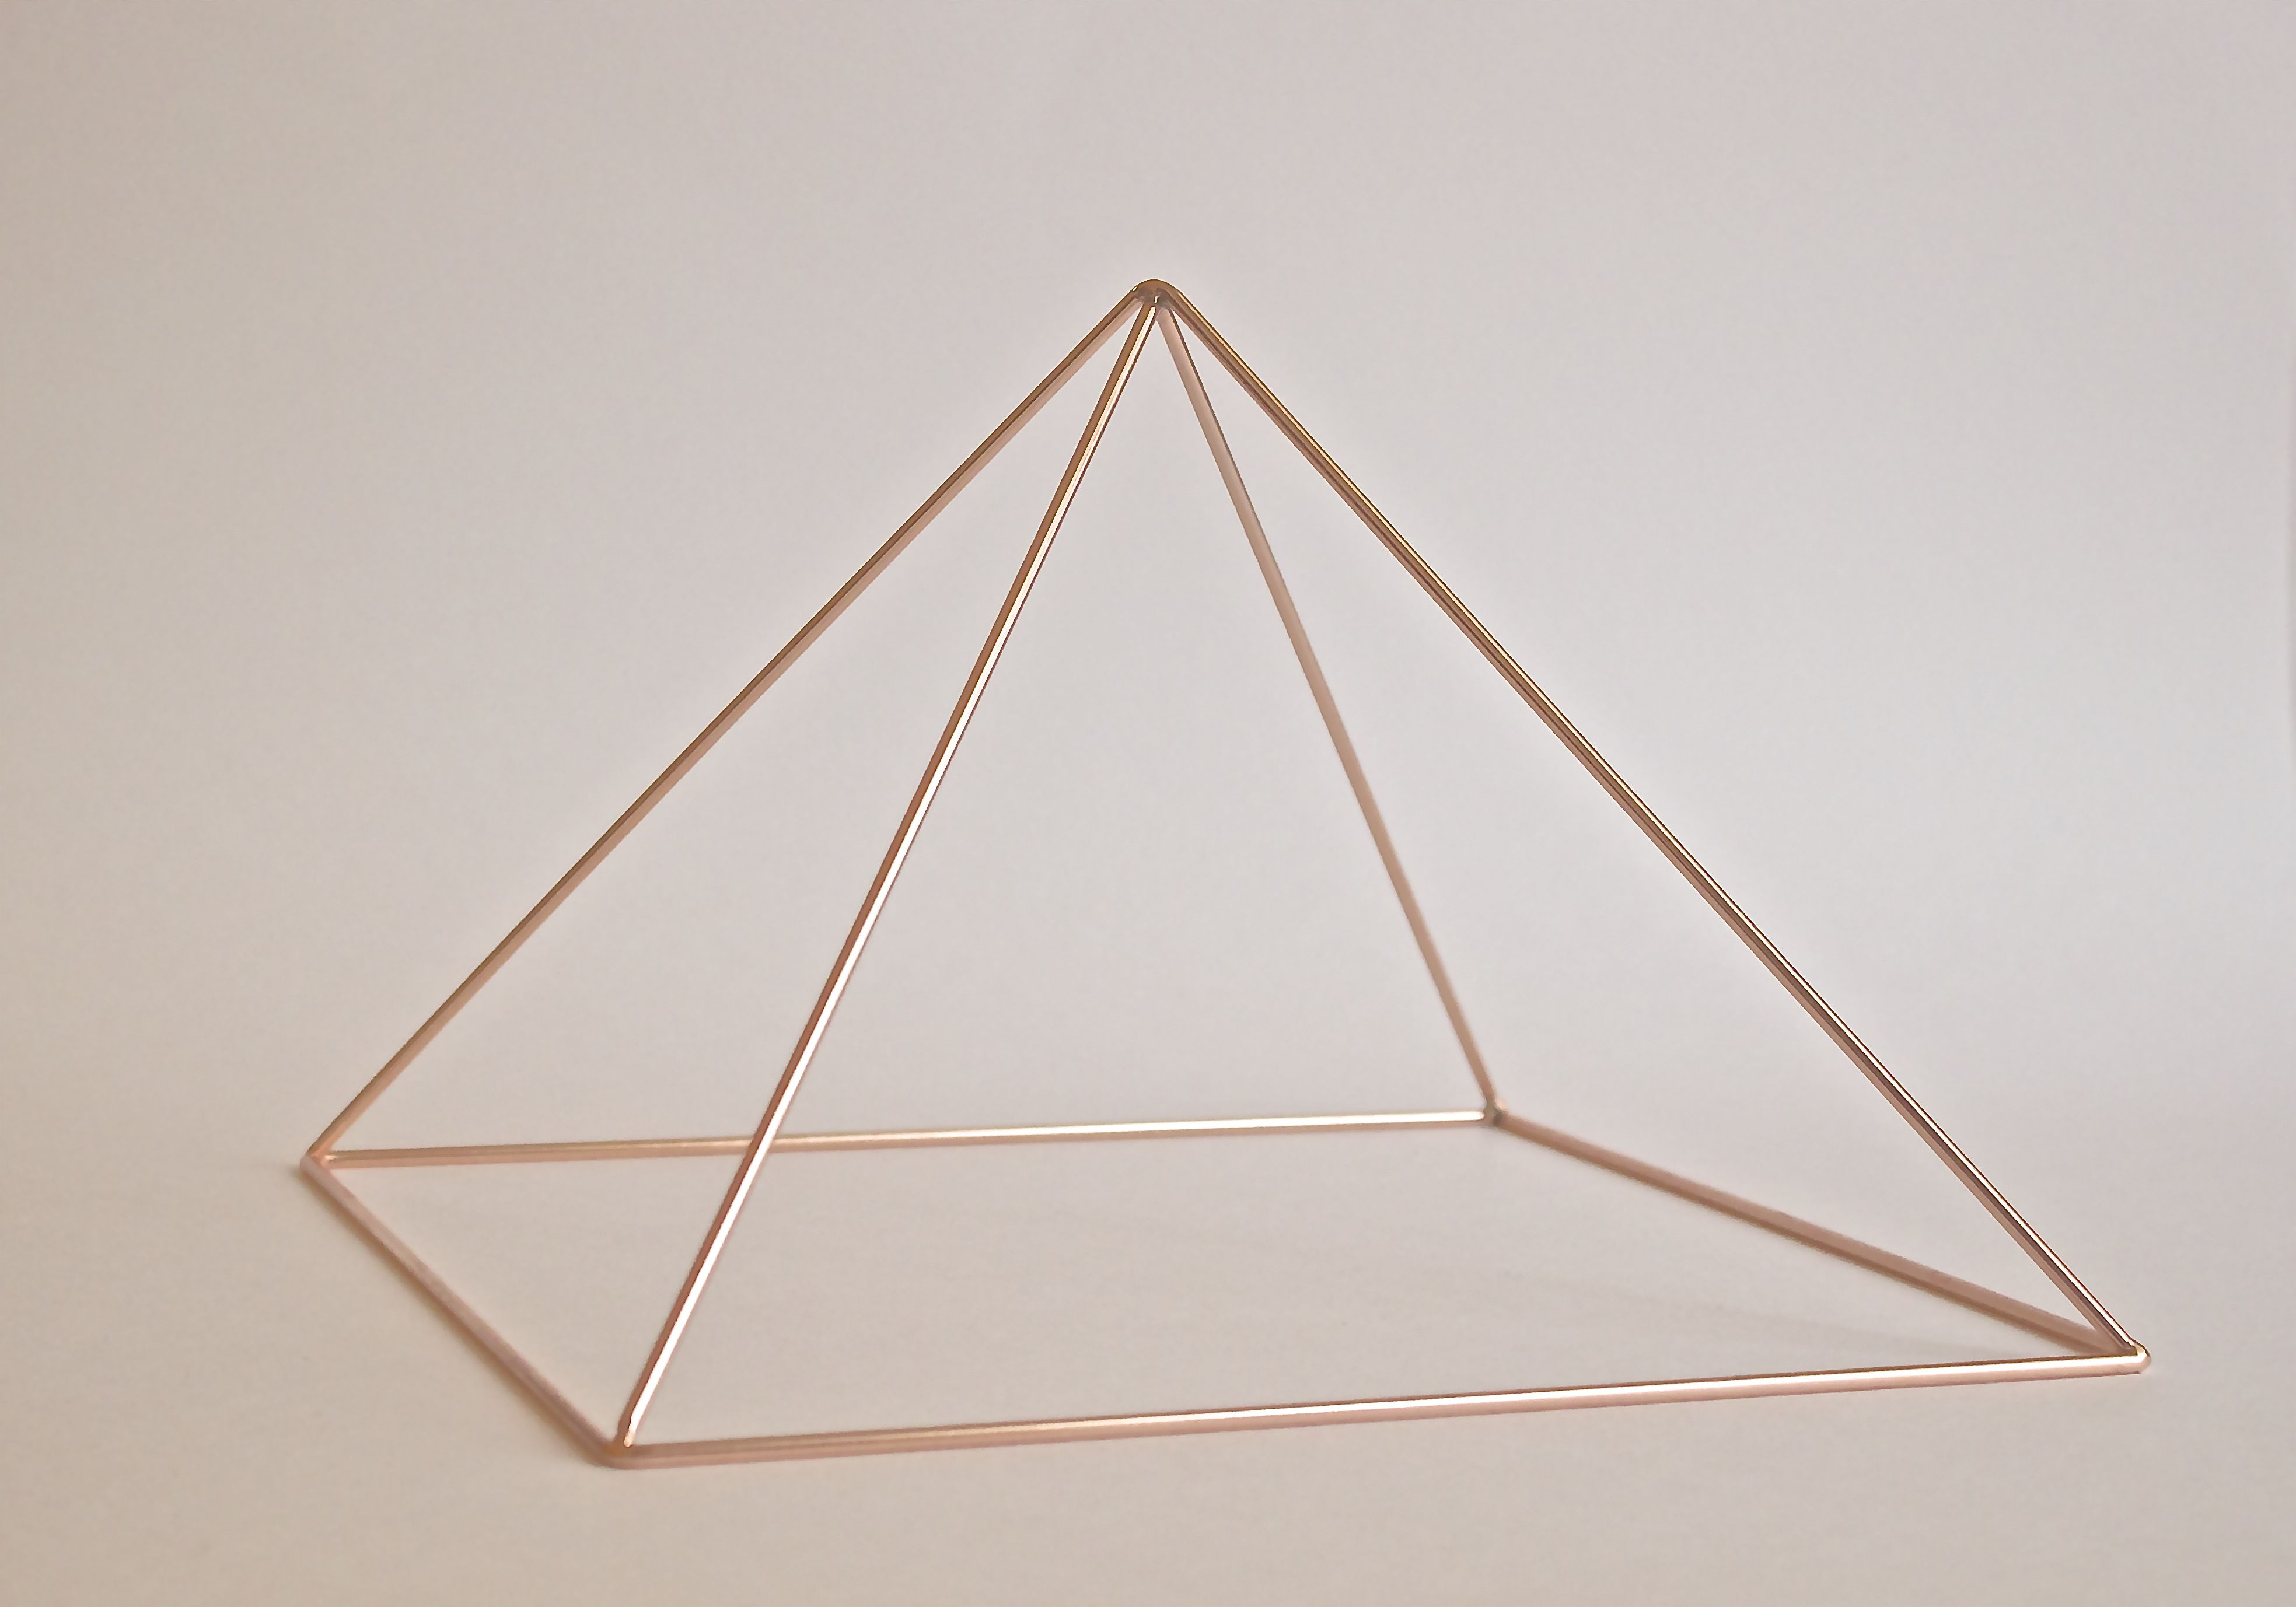 Pin by Healing Energy Tools on Copper Headgear Pyramids | Copper